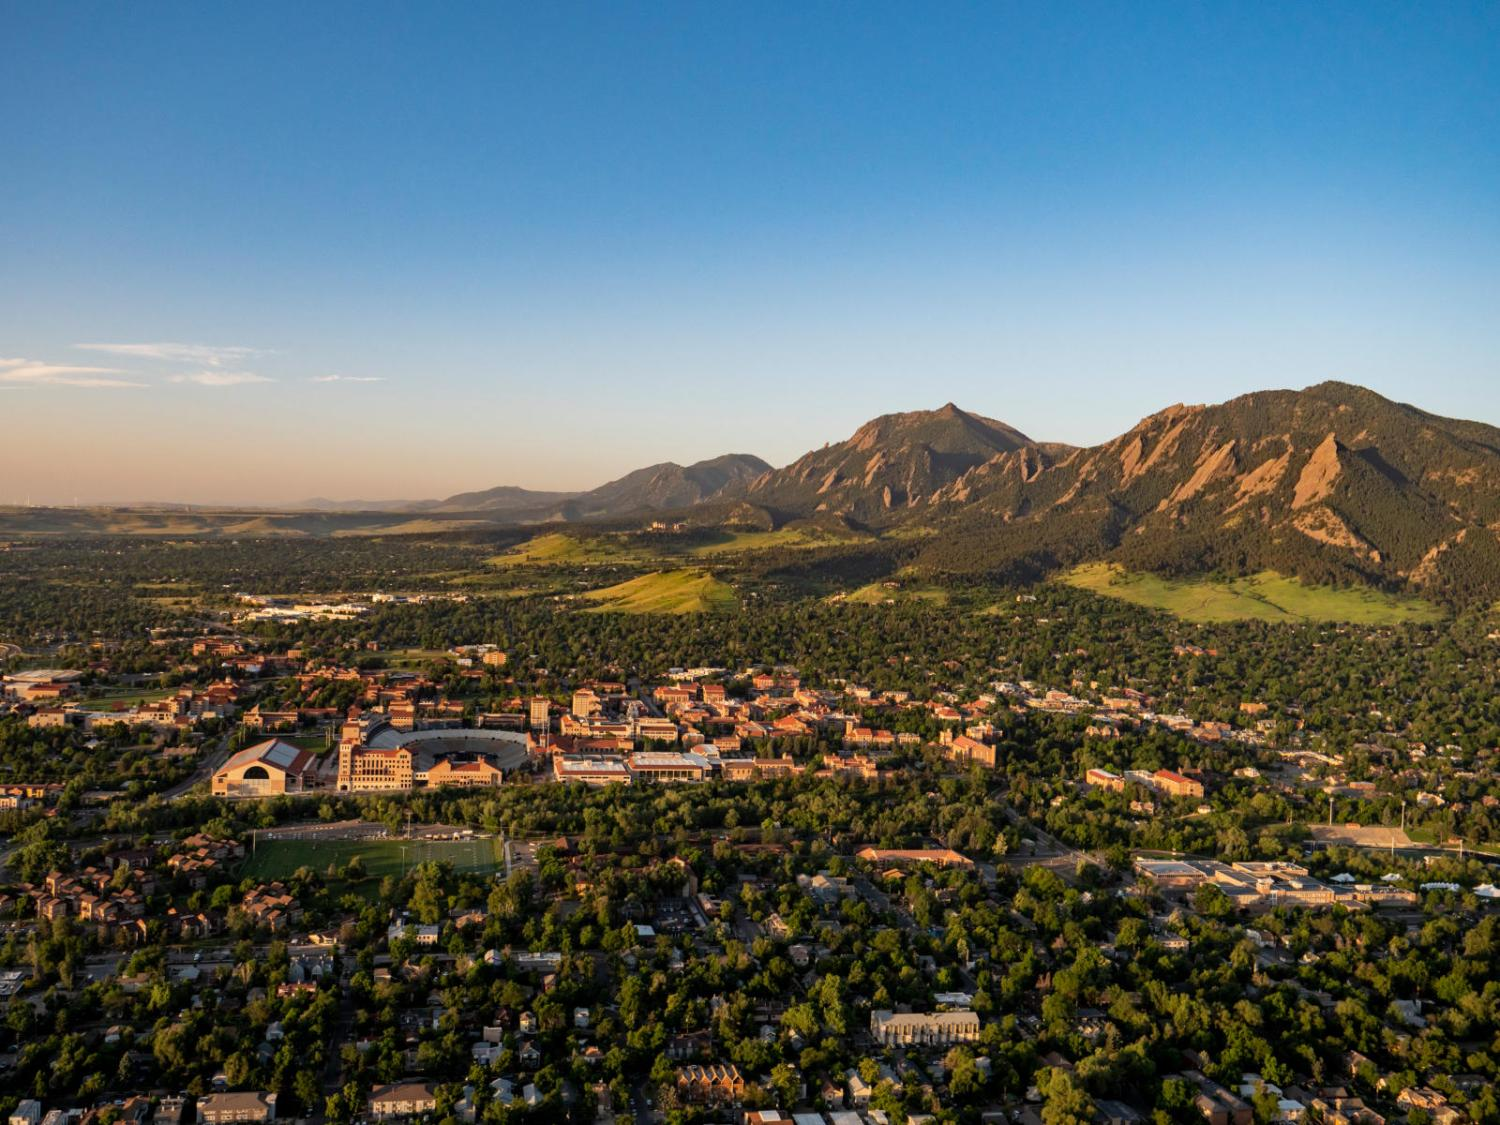 Ariel view of CU Boulder campus with flat iron mountains in background